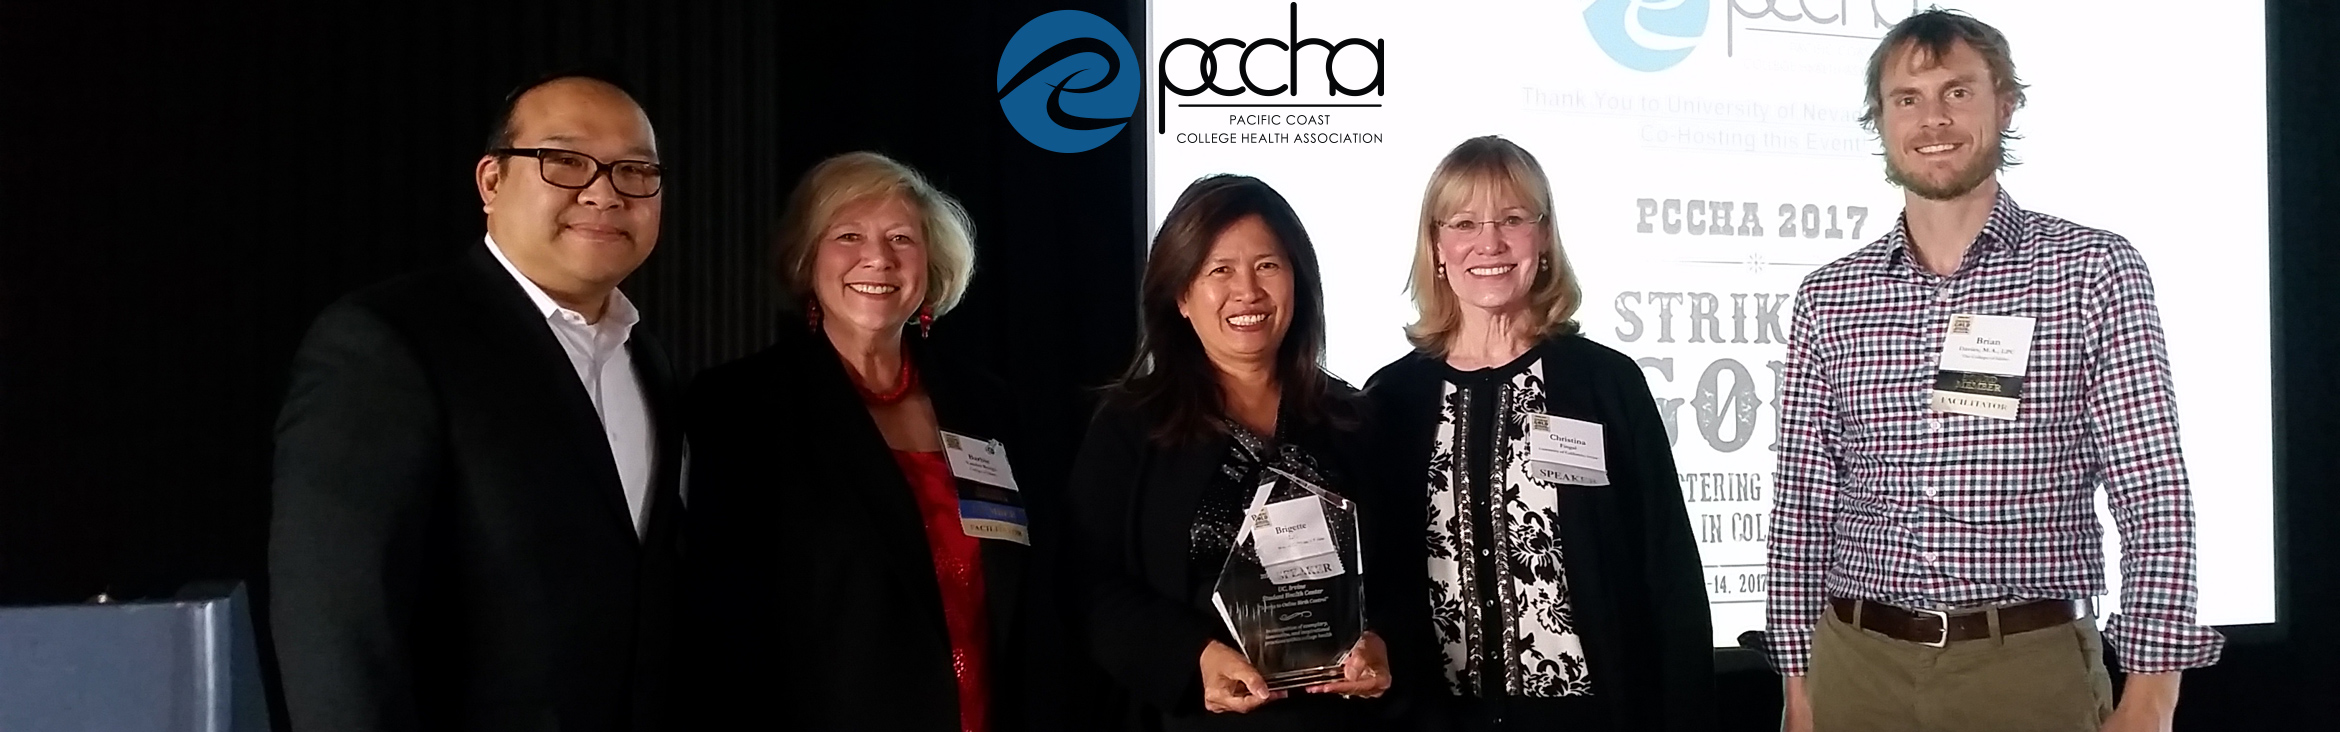 UCI Student Health Center recently honored with the Golden Gull award from Pacific Coast College Health Association